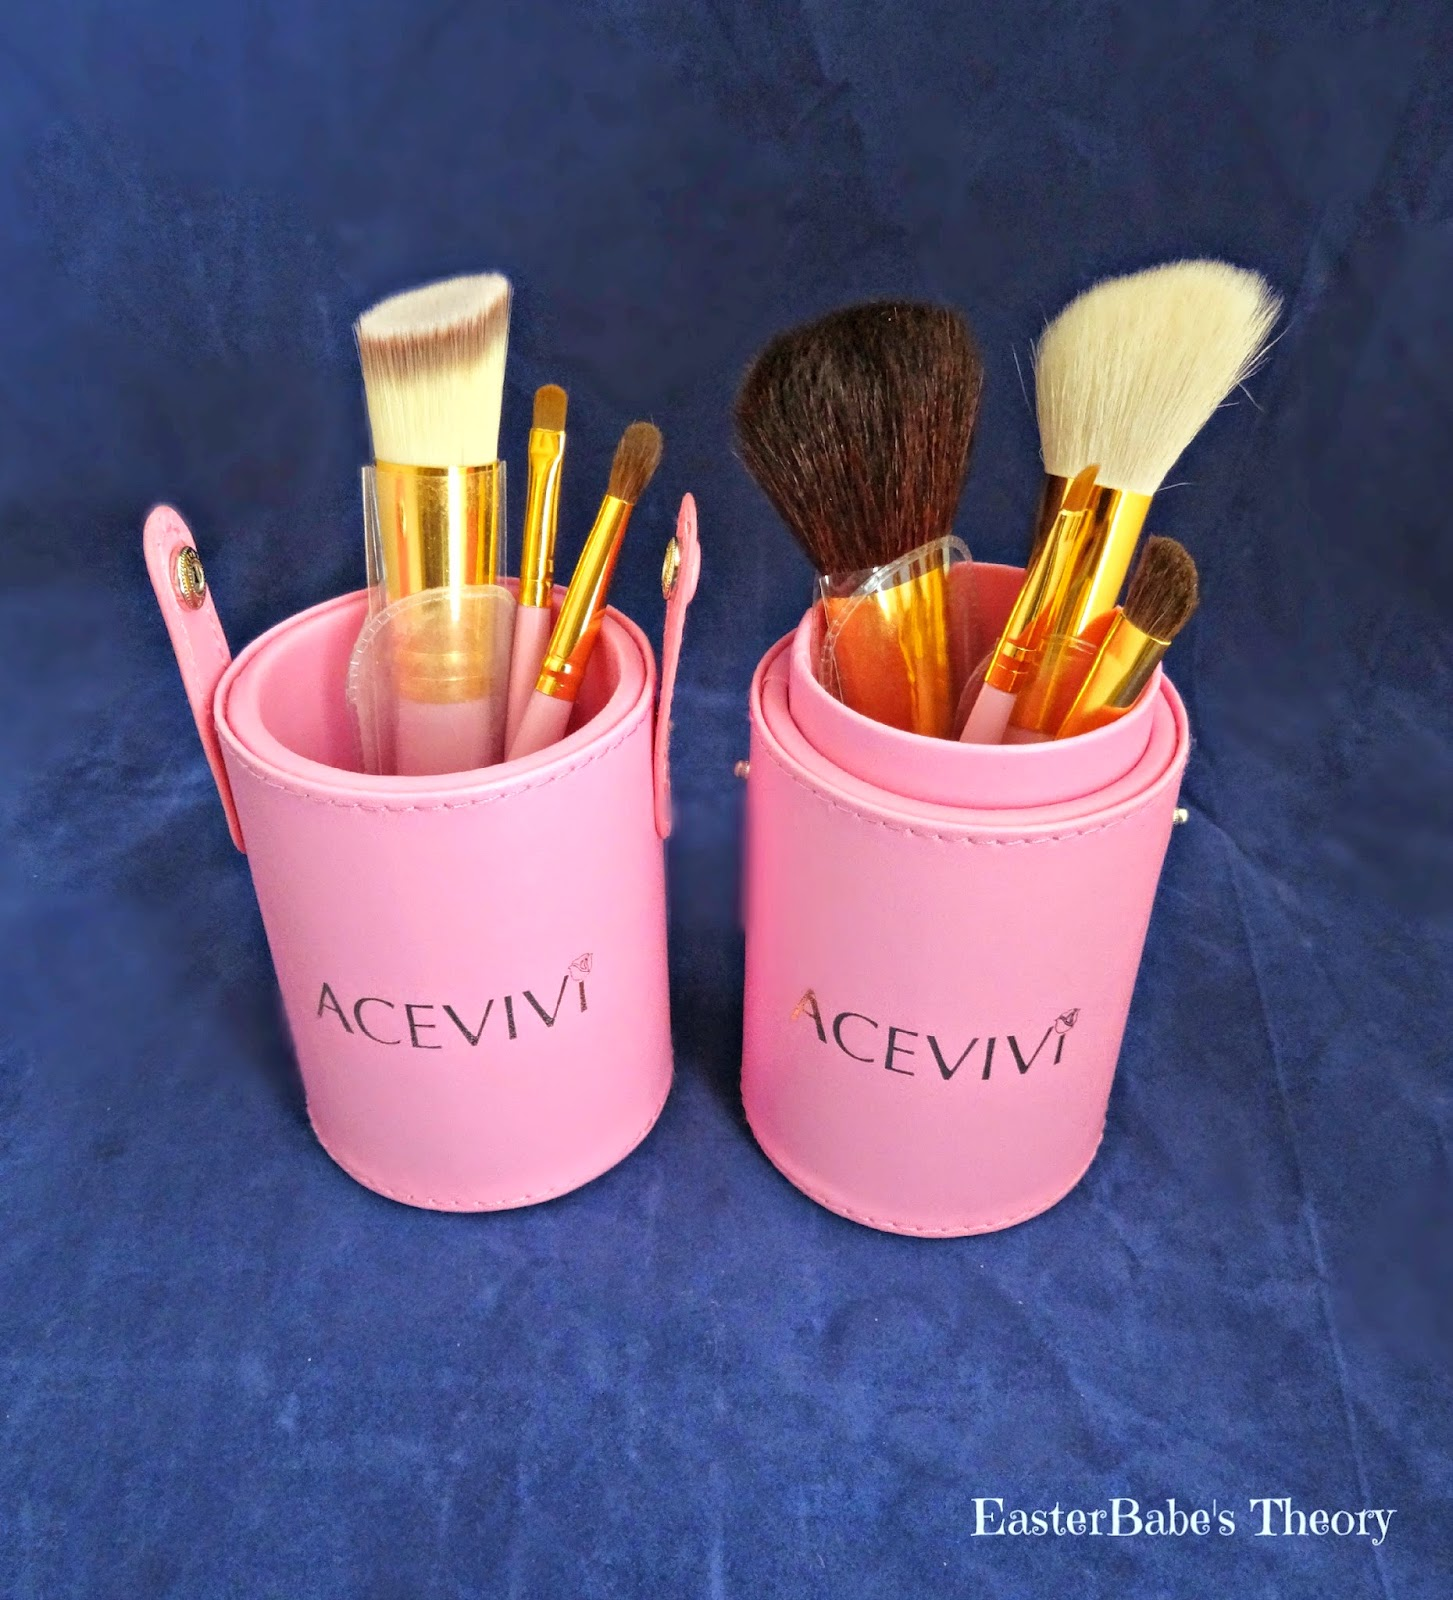 ACEVIVI Makeup Brush Sets Review